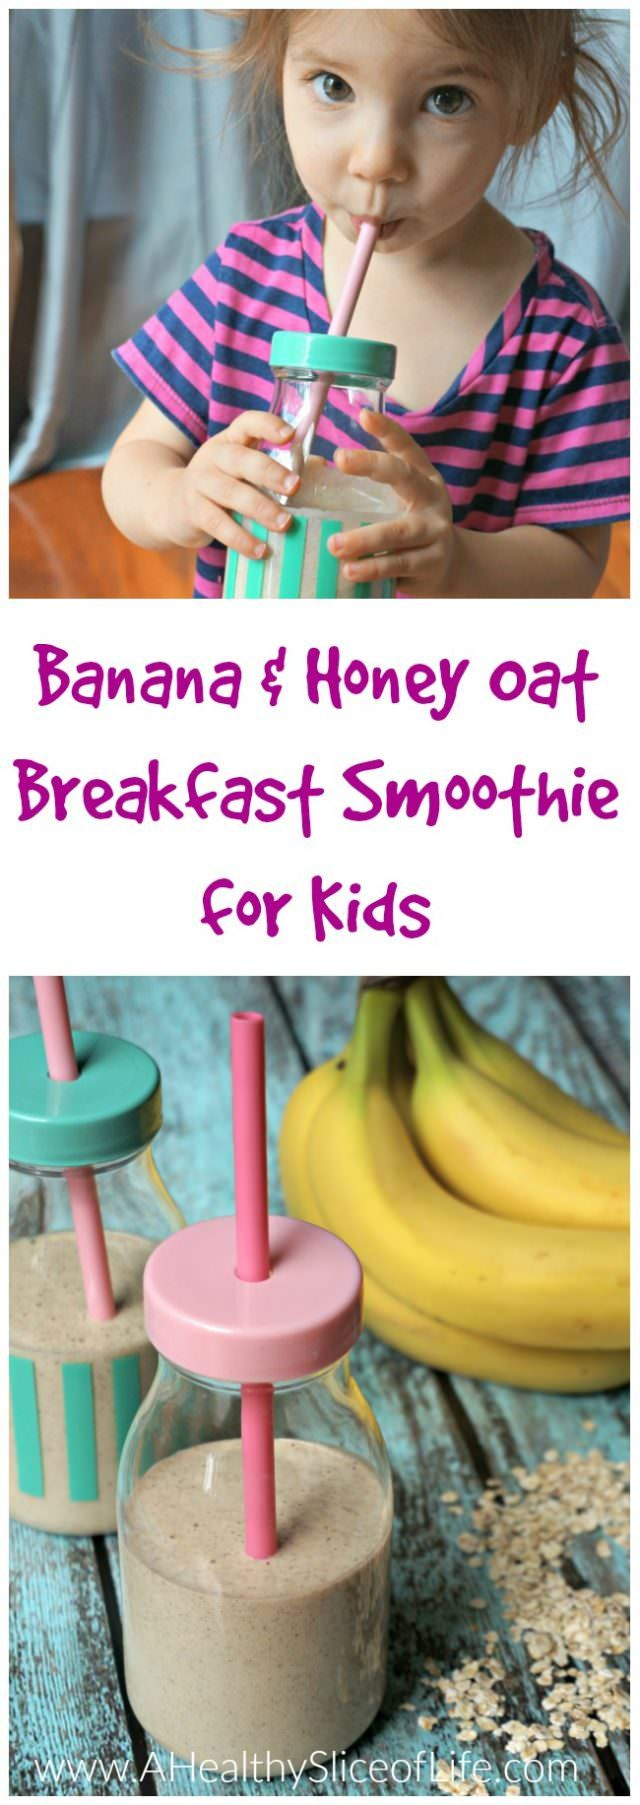 banana and honey oat breakfast smoothie for kids